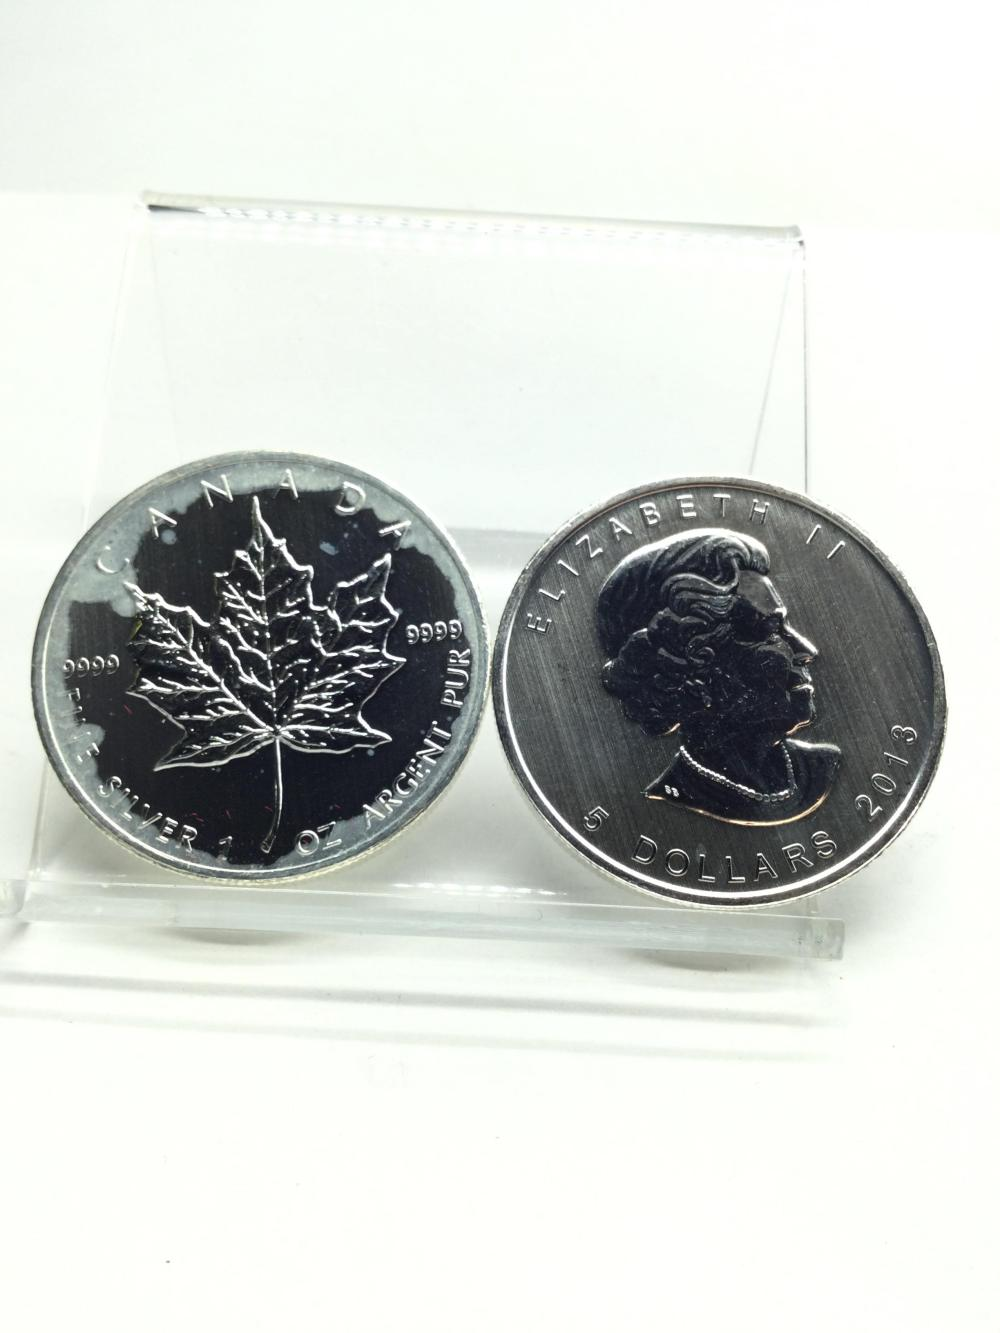 2 Canadian 1 Argent Ounce Fine Silver Rounds